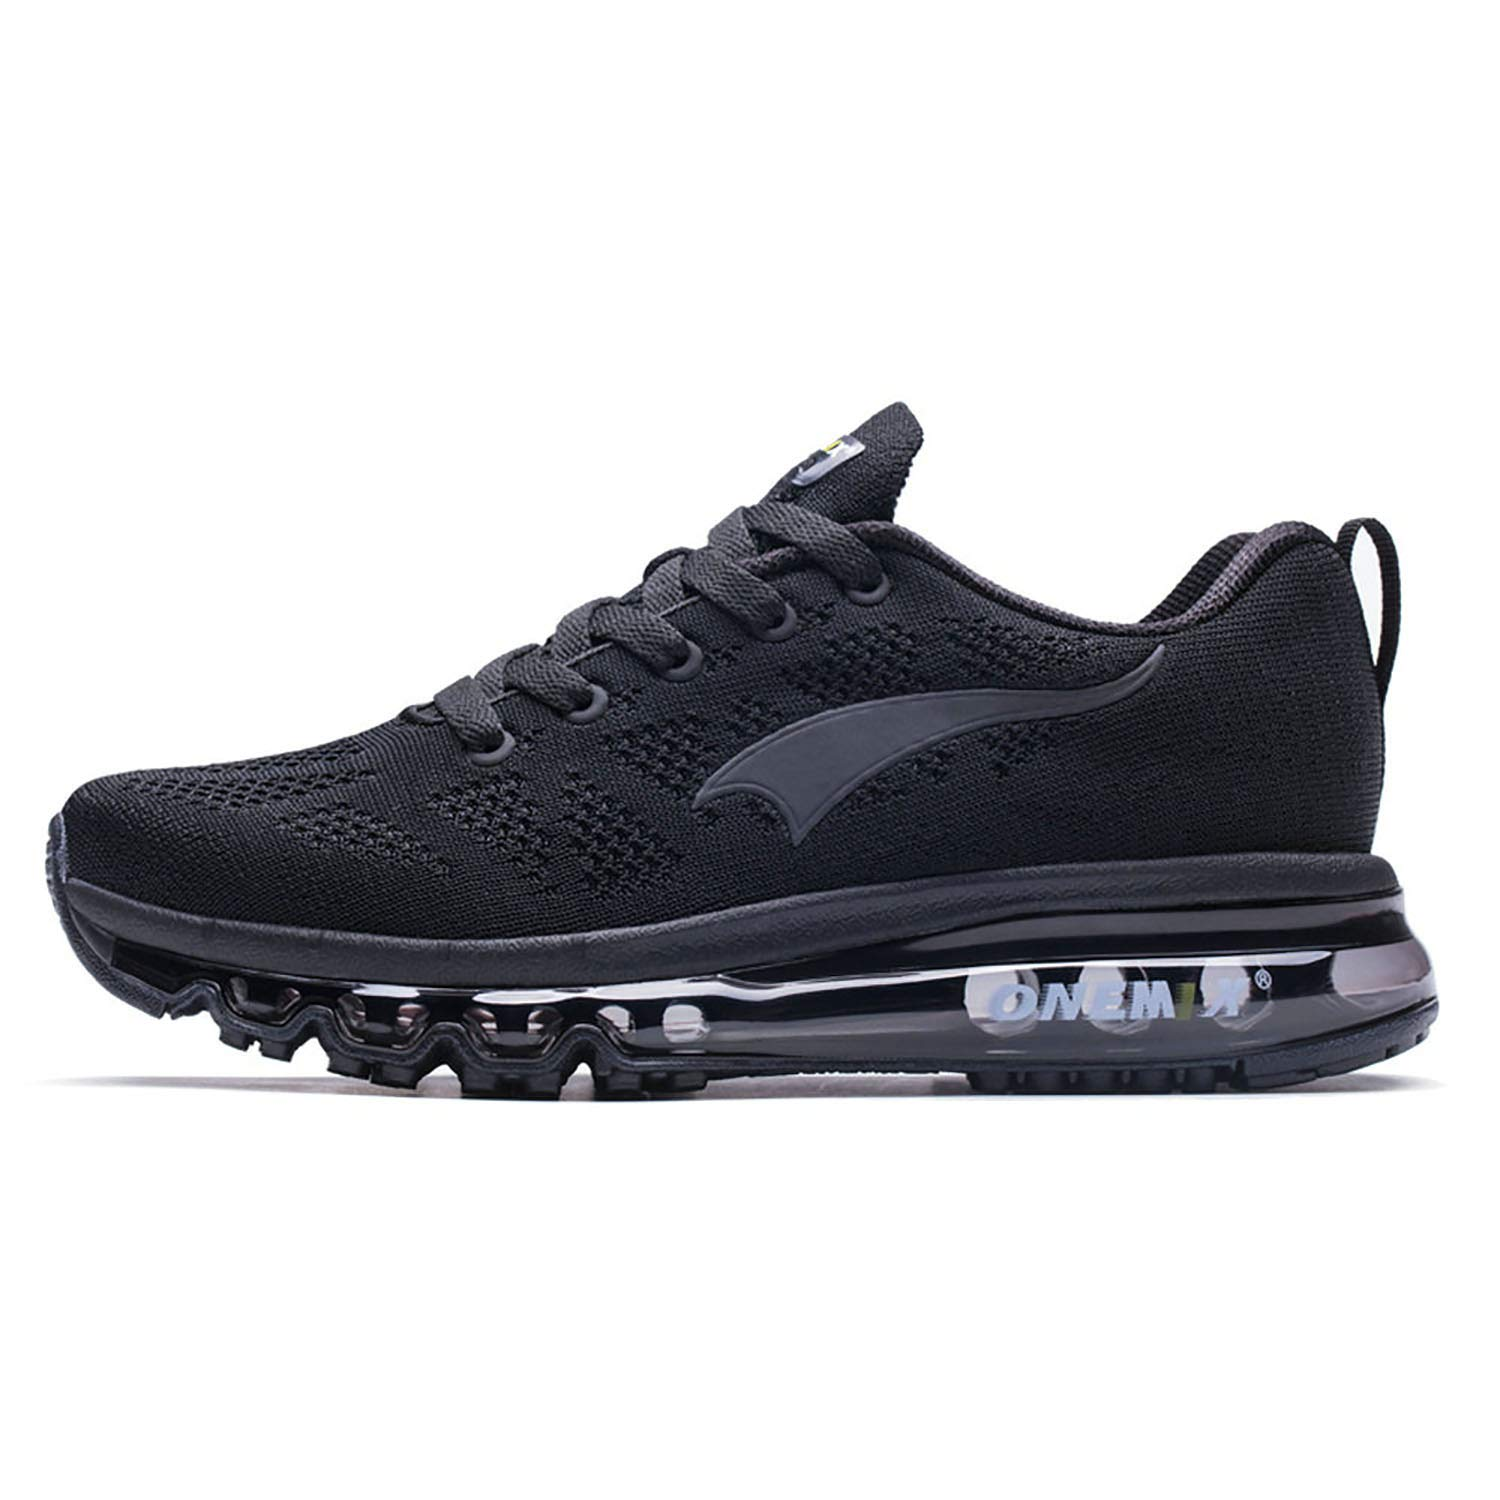 watch 00d7a 90350 OneMix Men s Air Breathable Trainers Lightweight Sports Running Shoes   Amazon.co.uk  Shoes   Bags